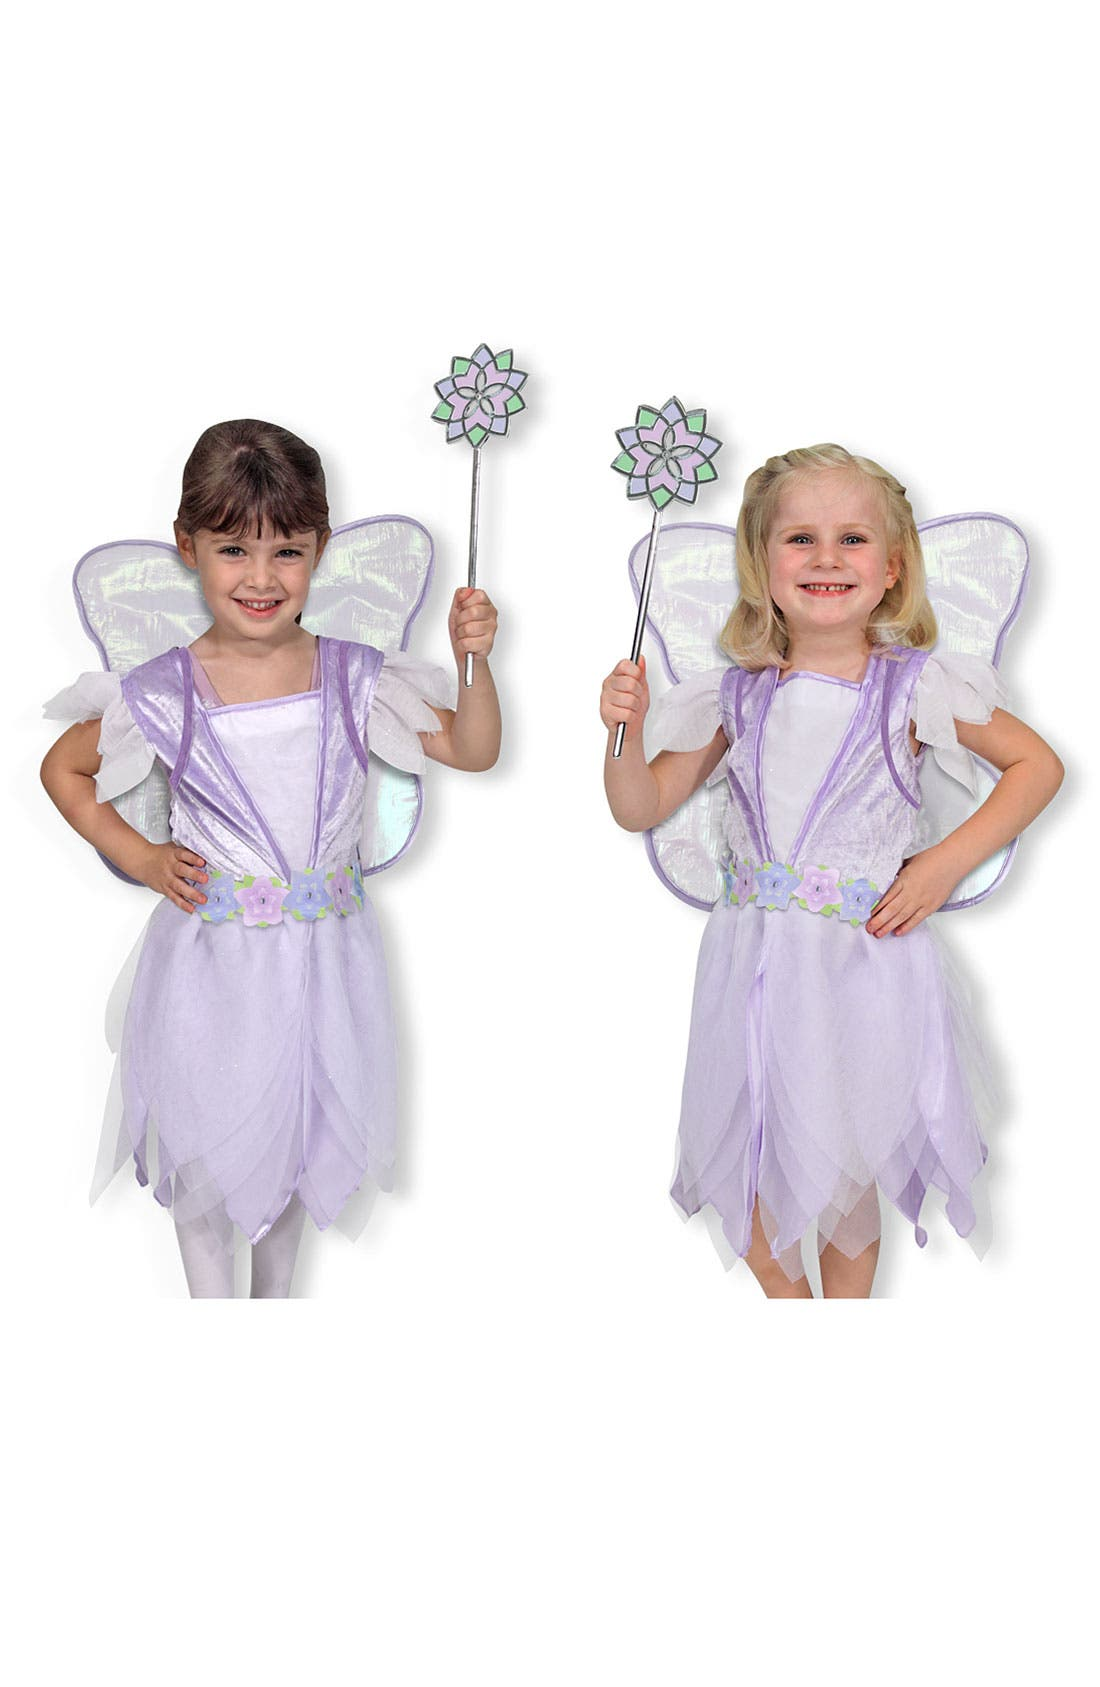 Alternate Image 1 Selected - Melissa & Doug 'Fairy' Costume (Toddler)